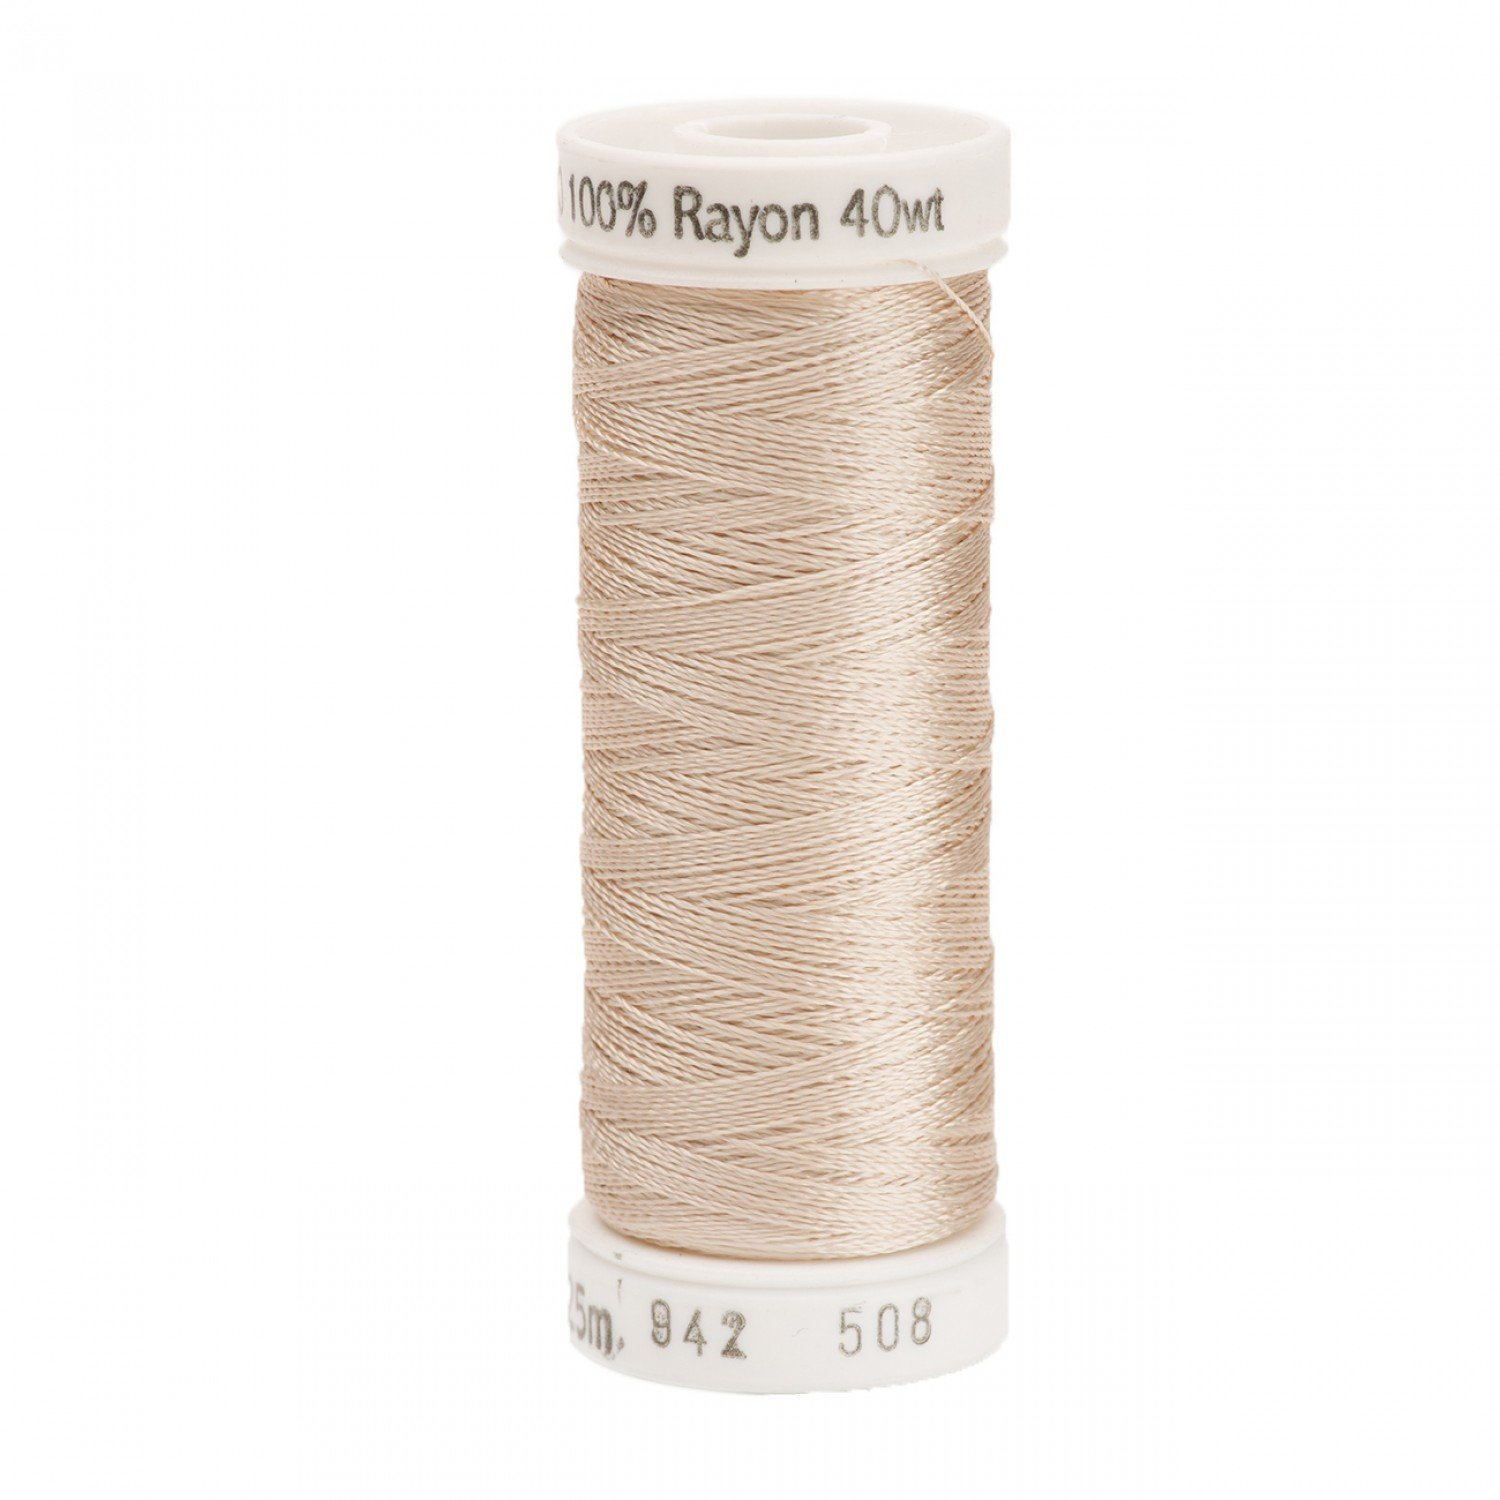 Sulky Rayon 40wt Sand